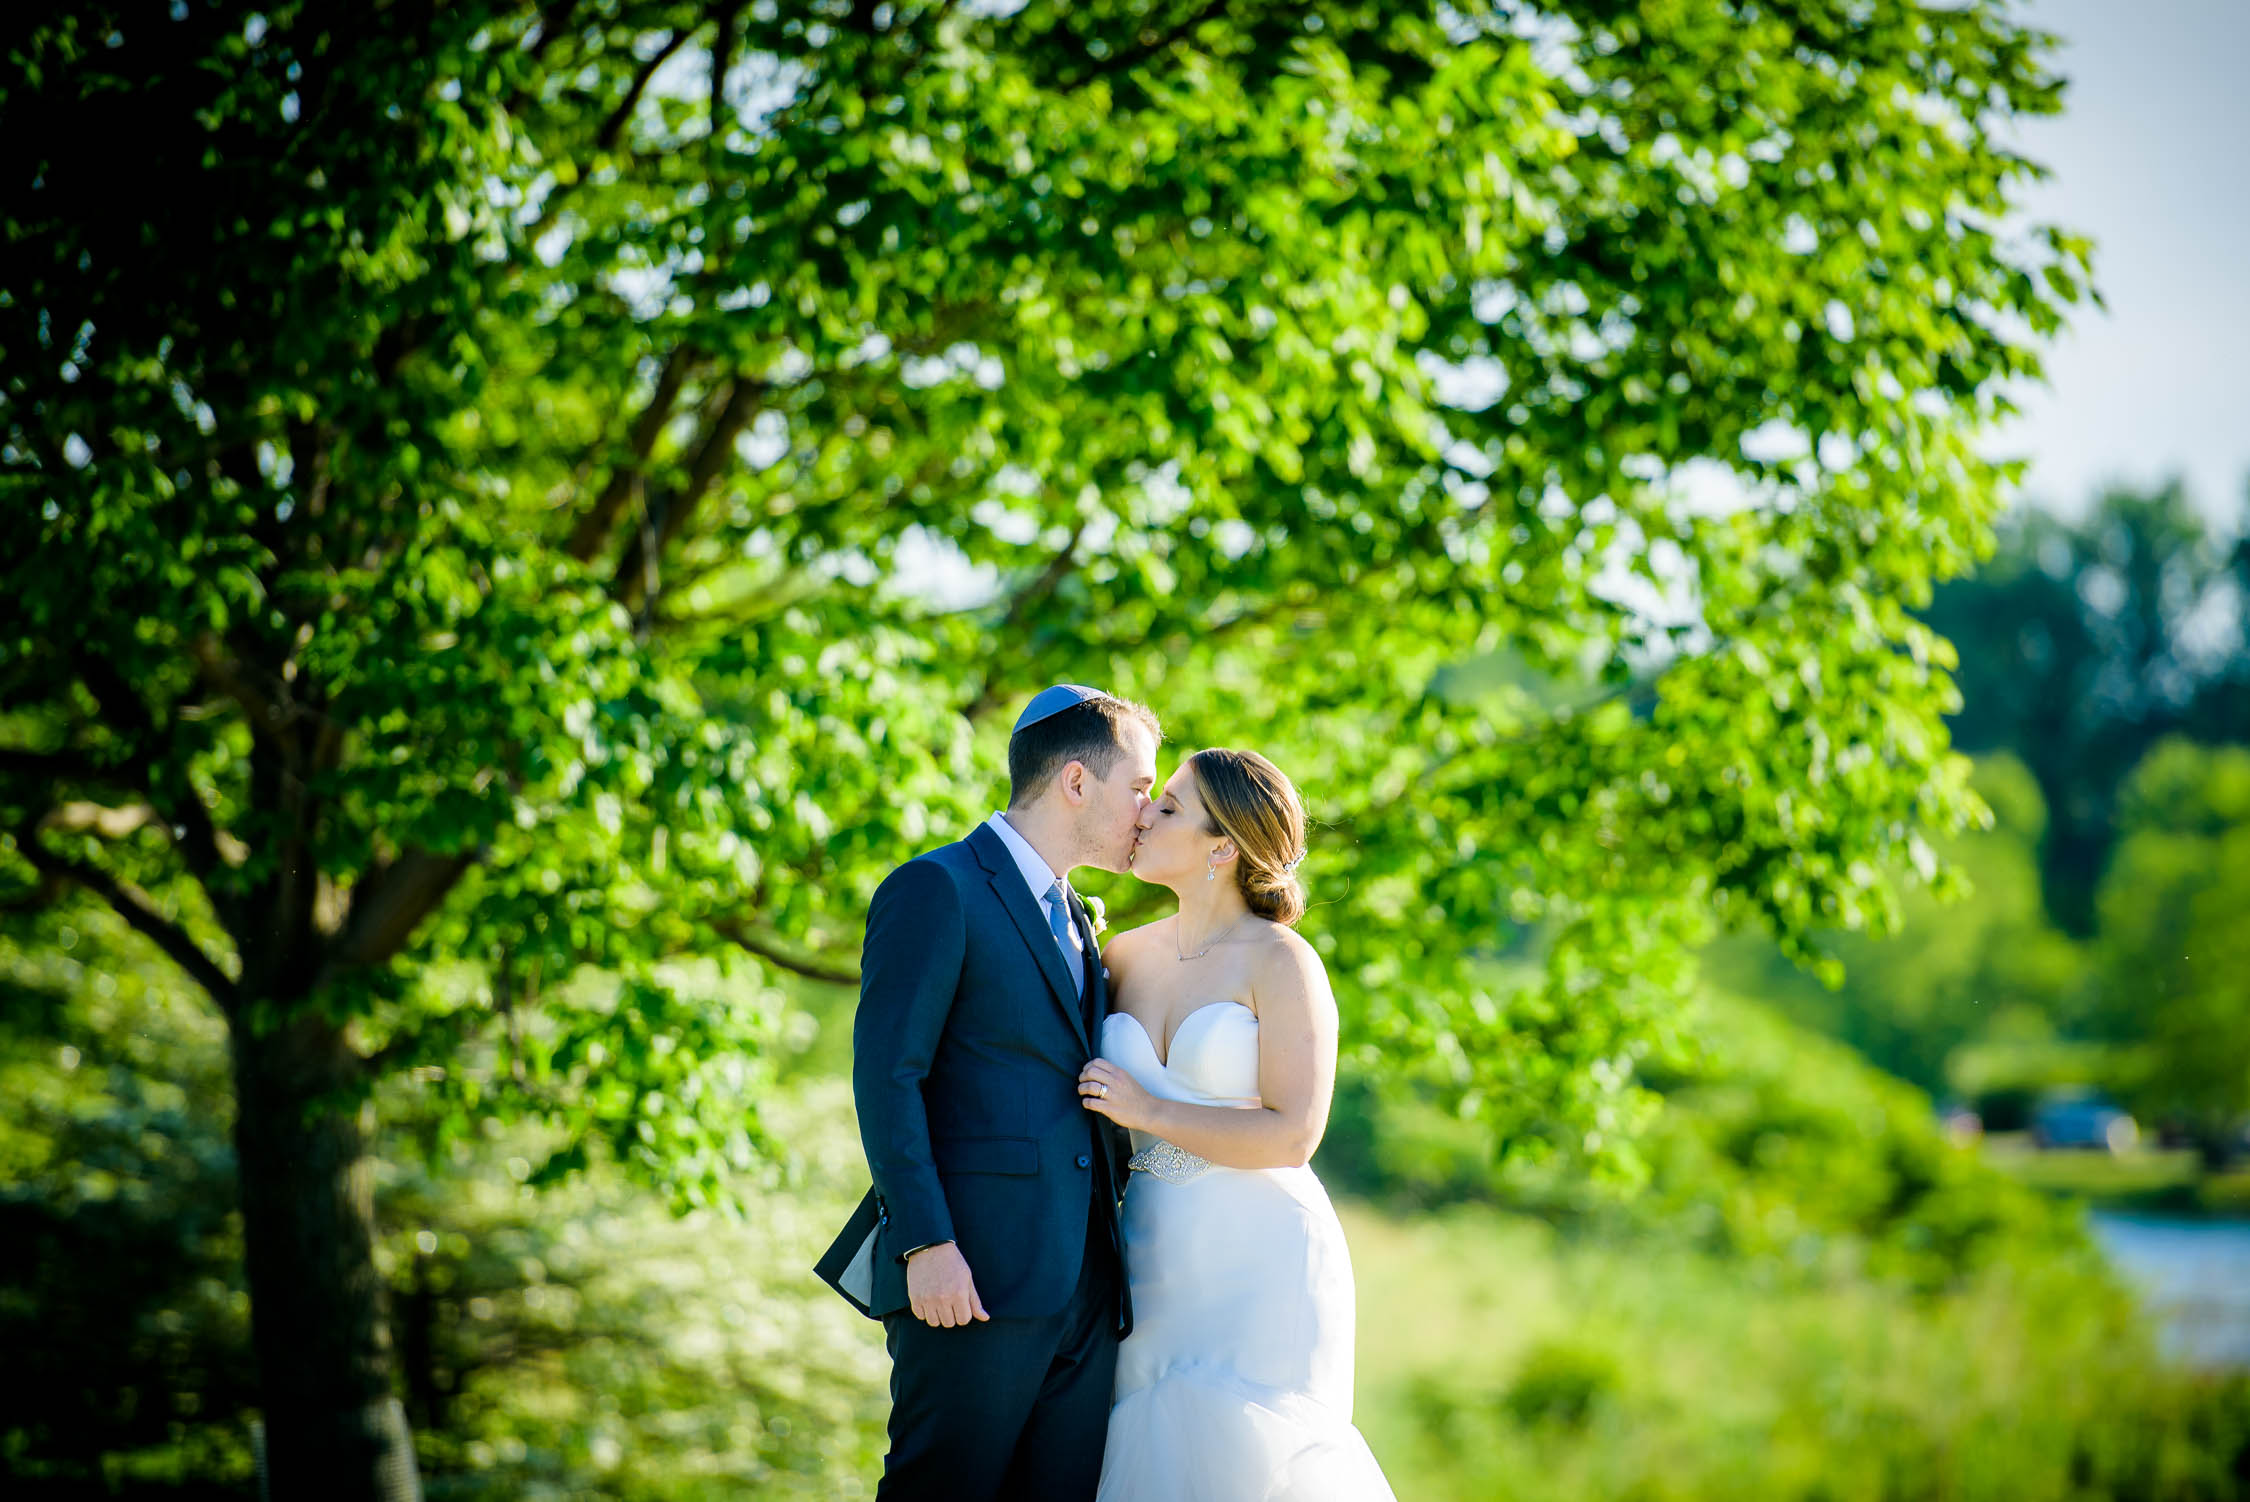 Bride and groom share a kiss on their wedding day at Independence Grove in Libertyville.